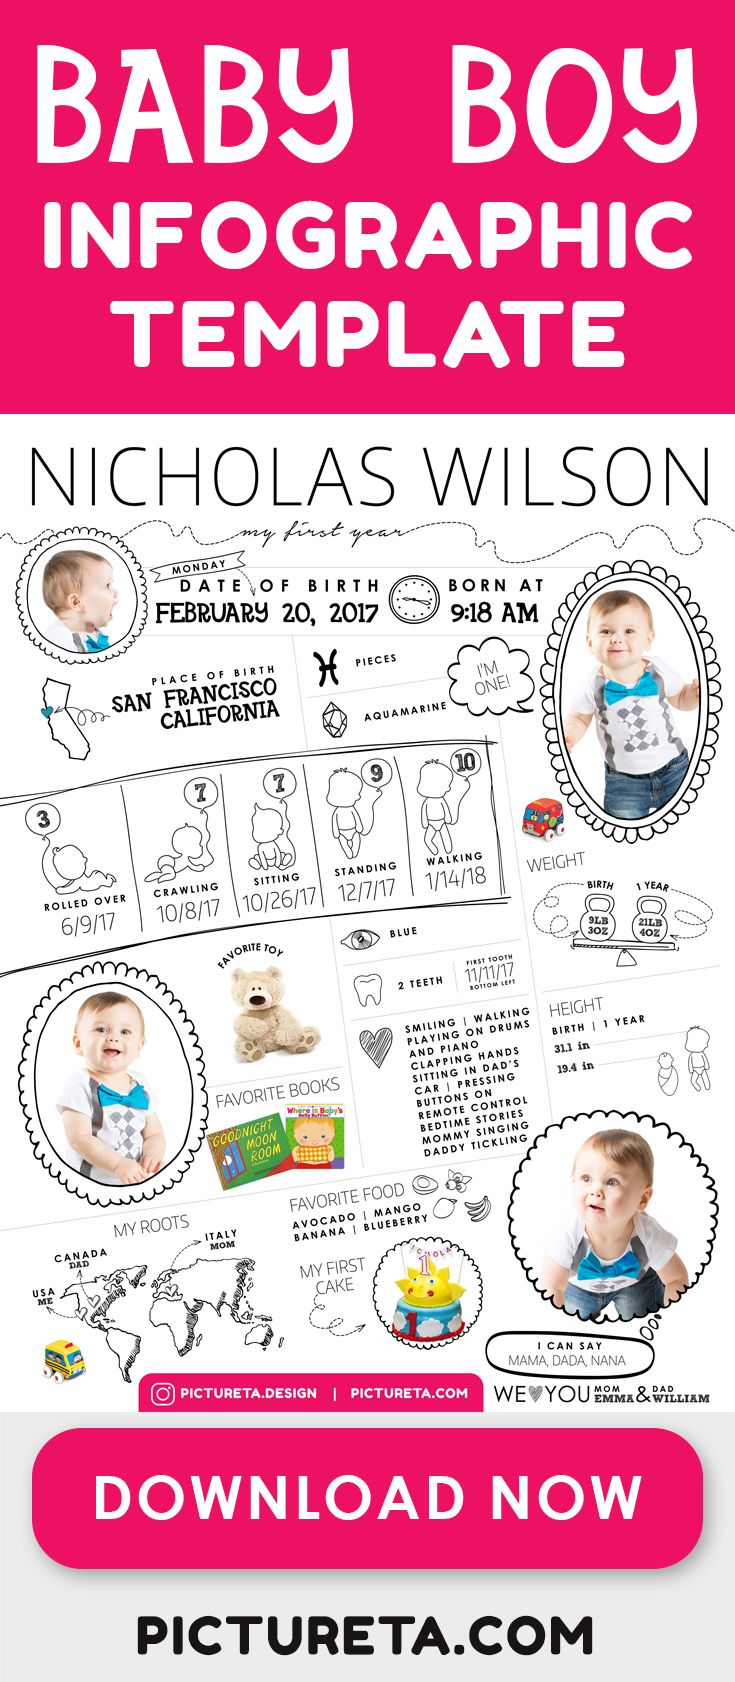 Baby Boy Infographic Template Create First Birthday Party